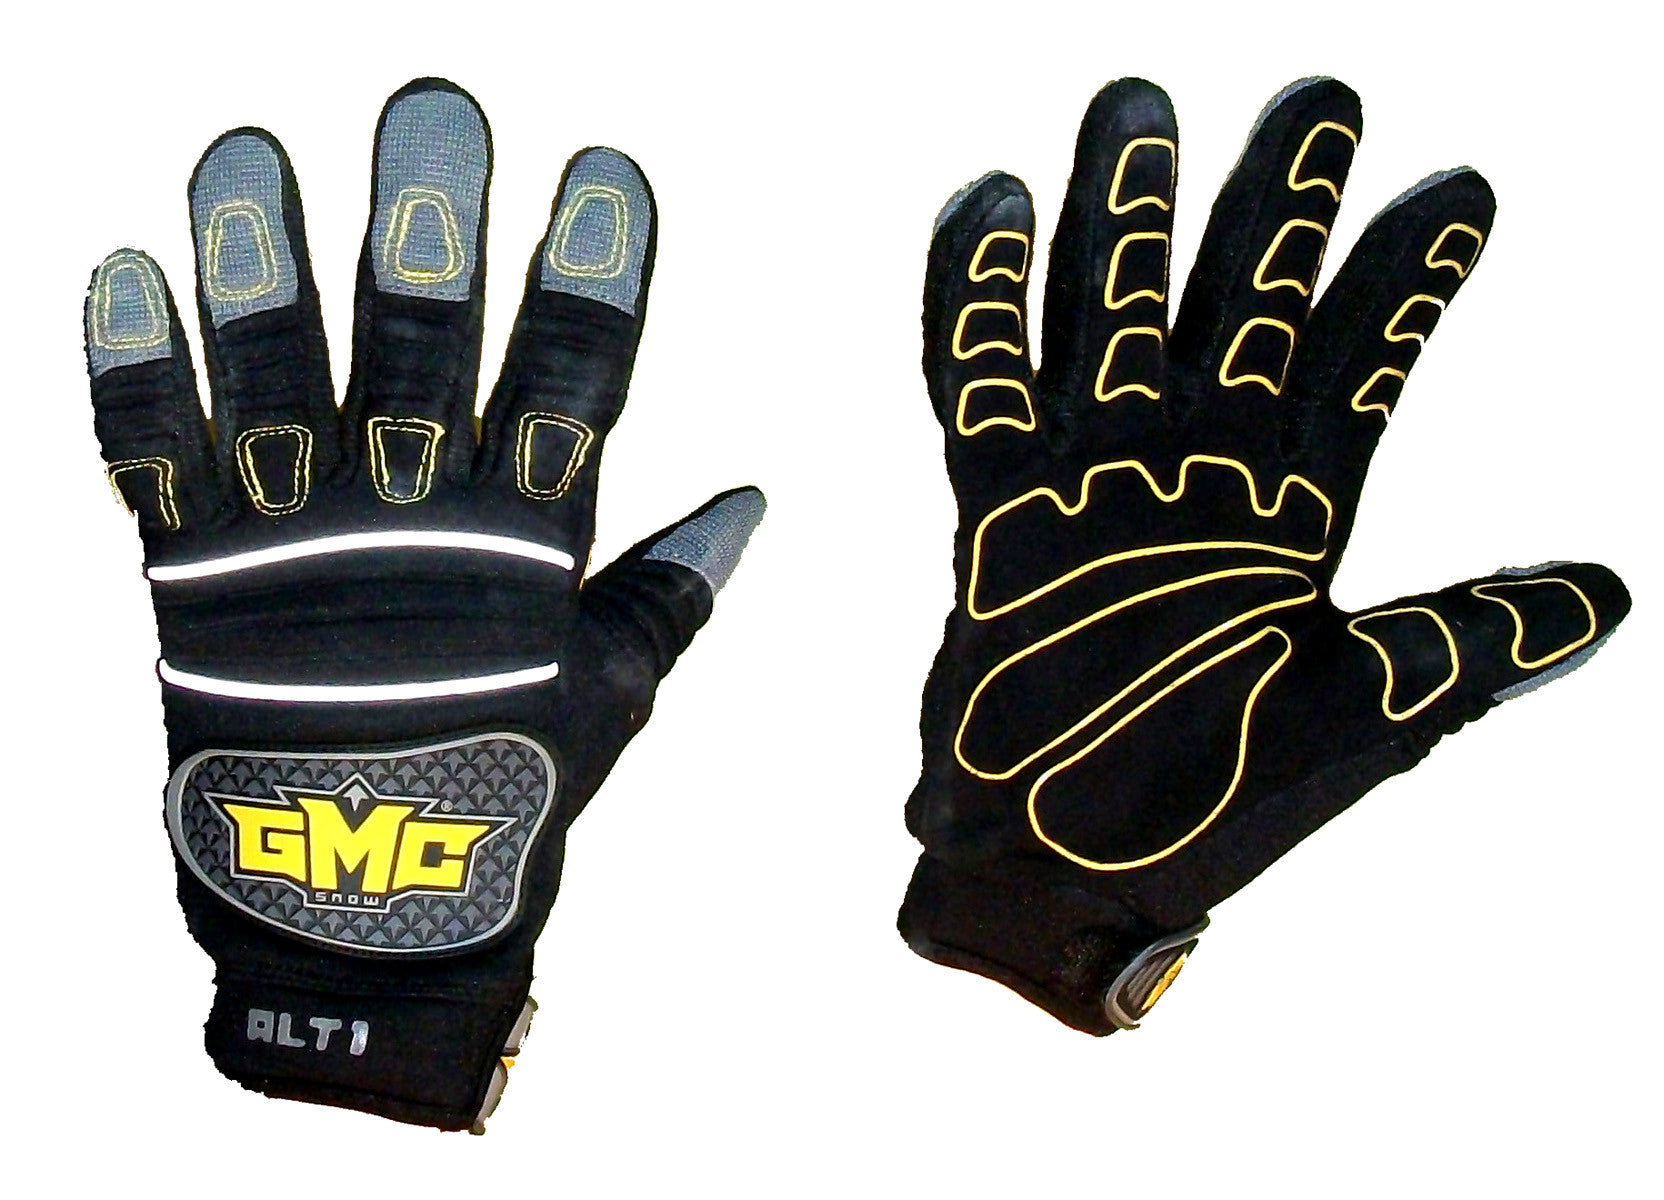 GMC Xhaust-ALT1 Snowboarding Pipe-Gloves-BMX-MOTOX-ATV-Quad-MTB black gray  Extra-Small